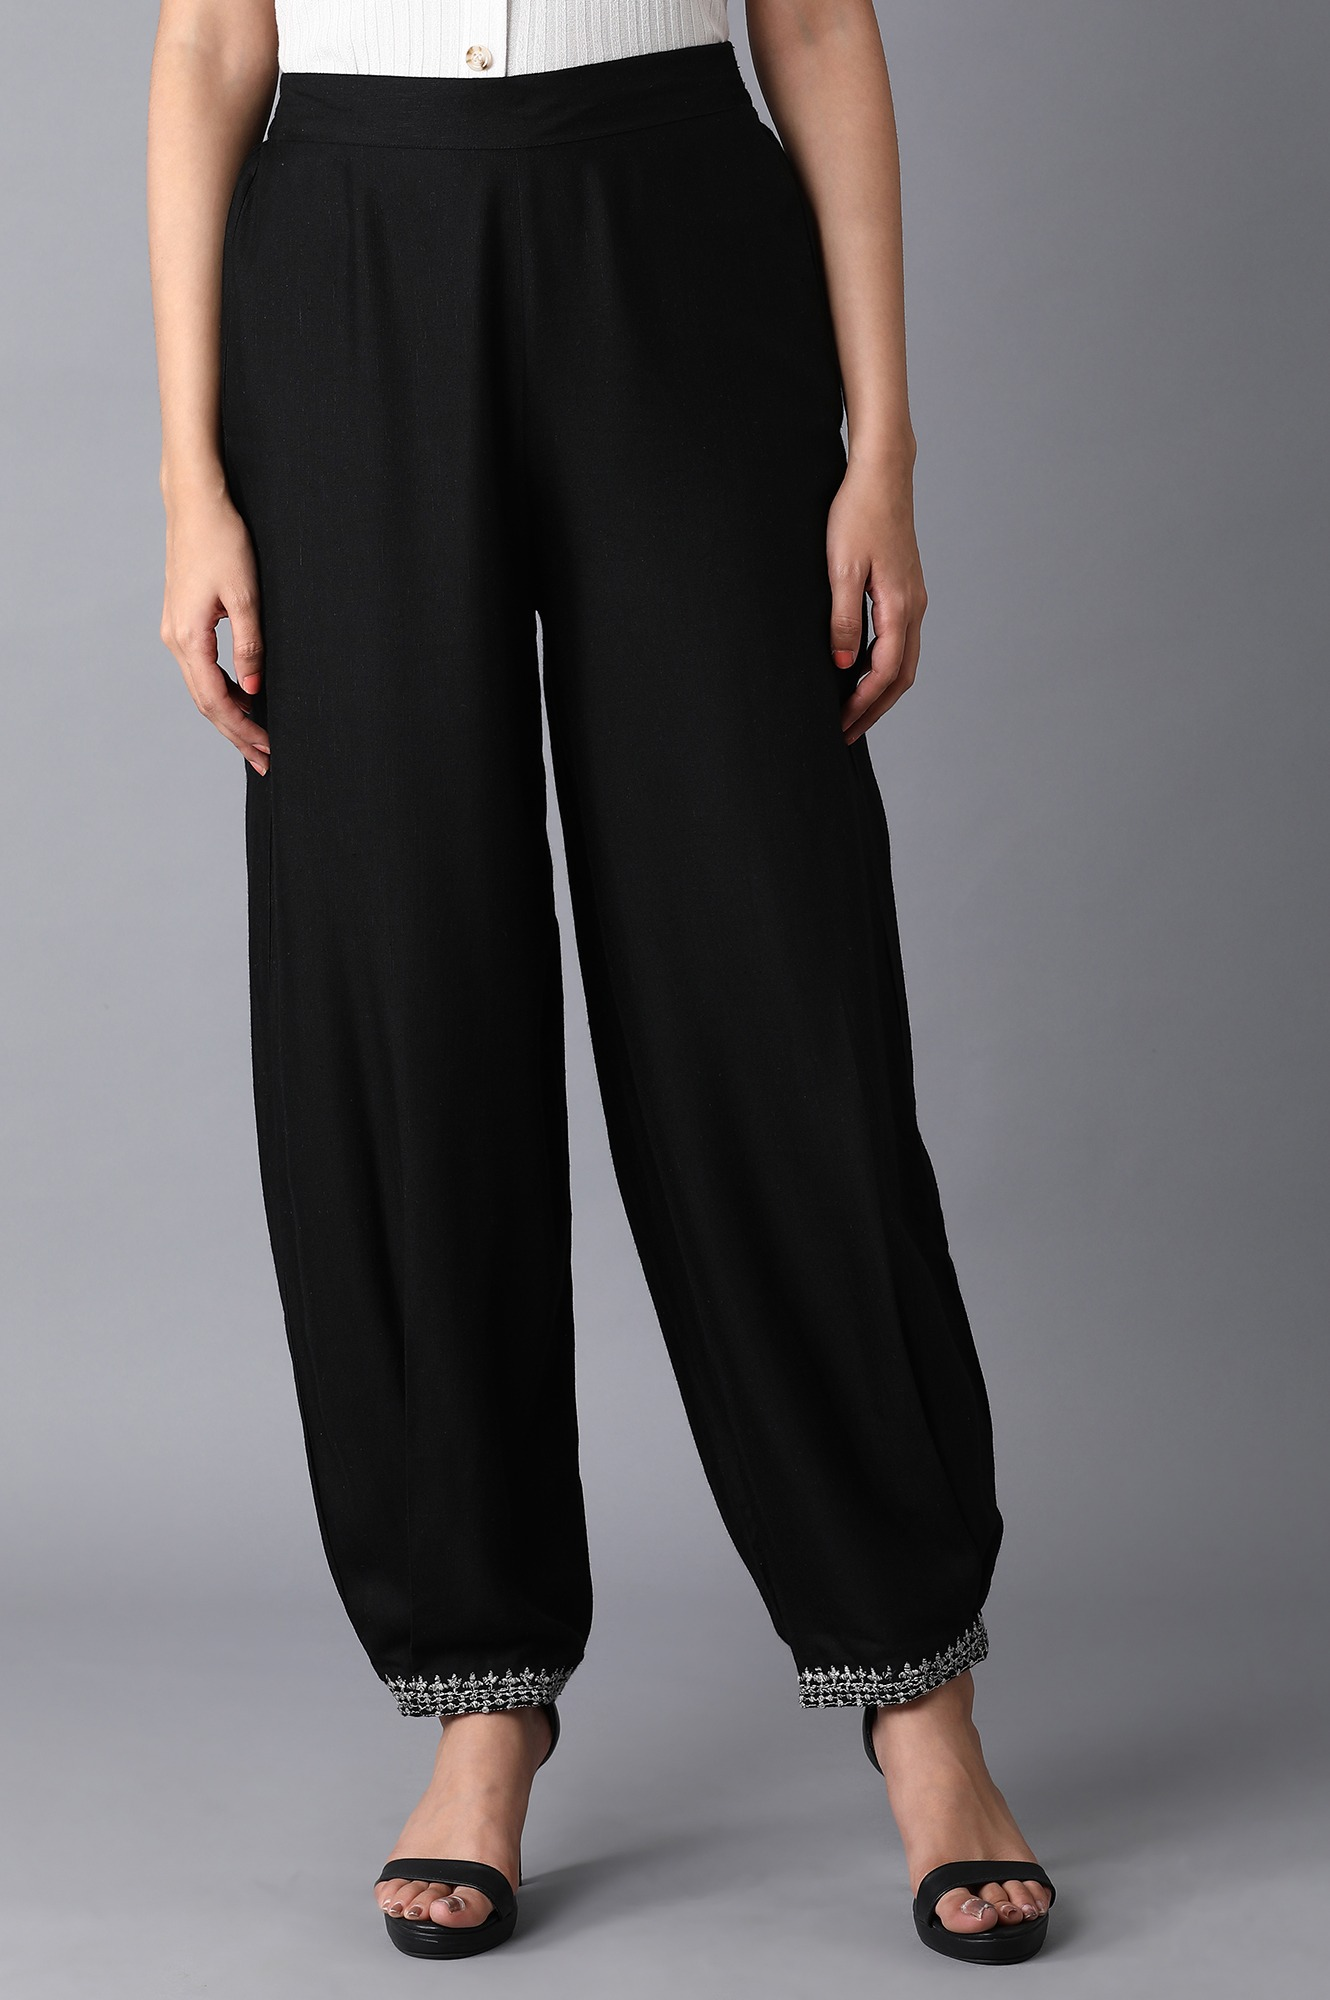 W | Jet Black Embroidered Carrot Pants